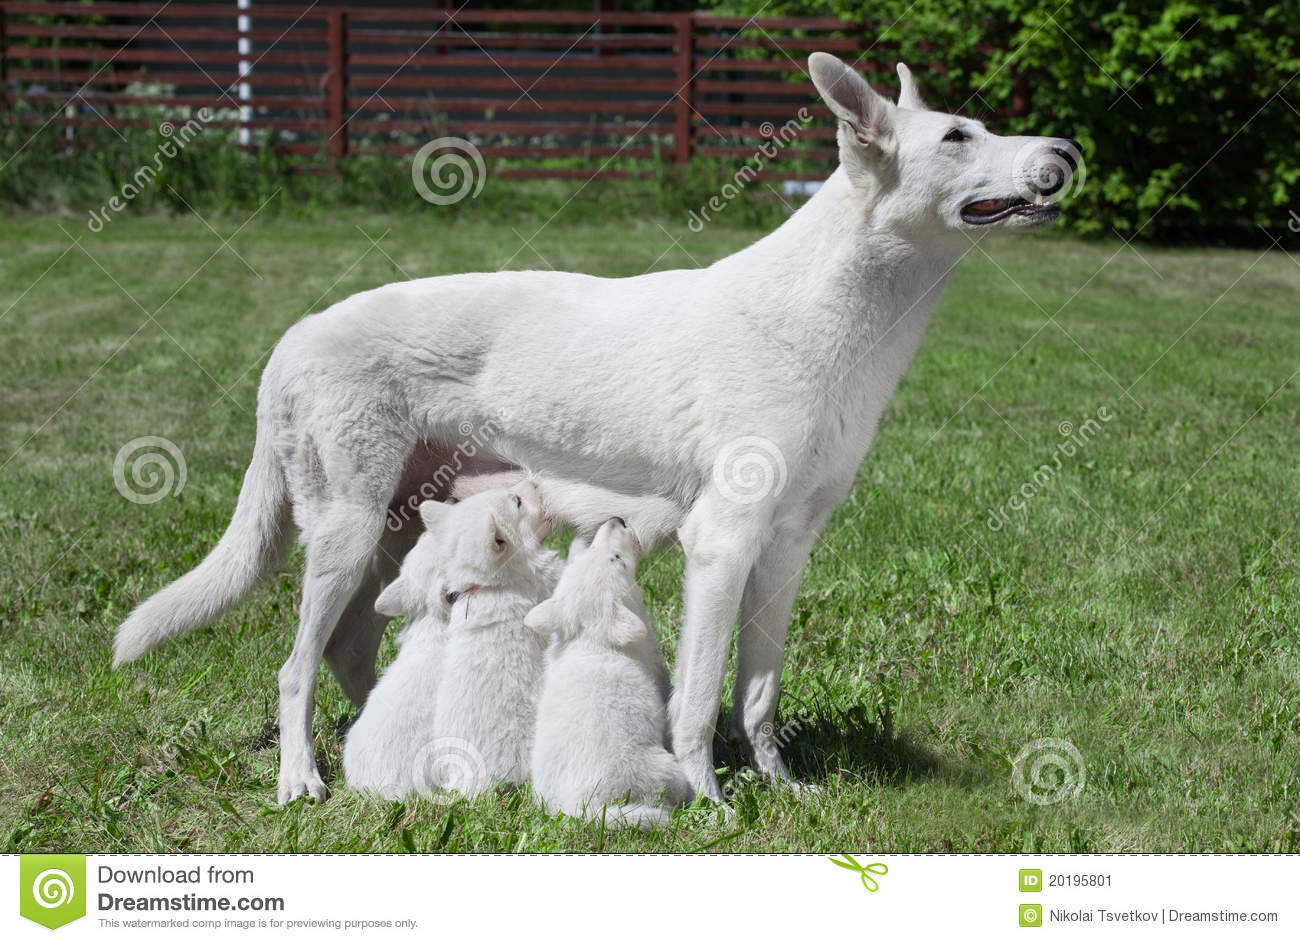 Breast Feeding Dog With Pups Stock Image - Image: 20195801